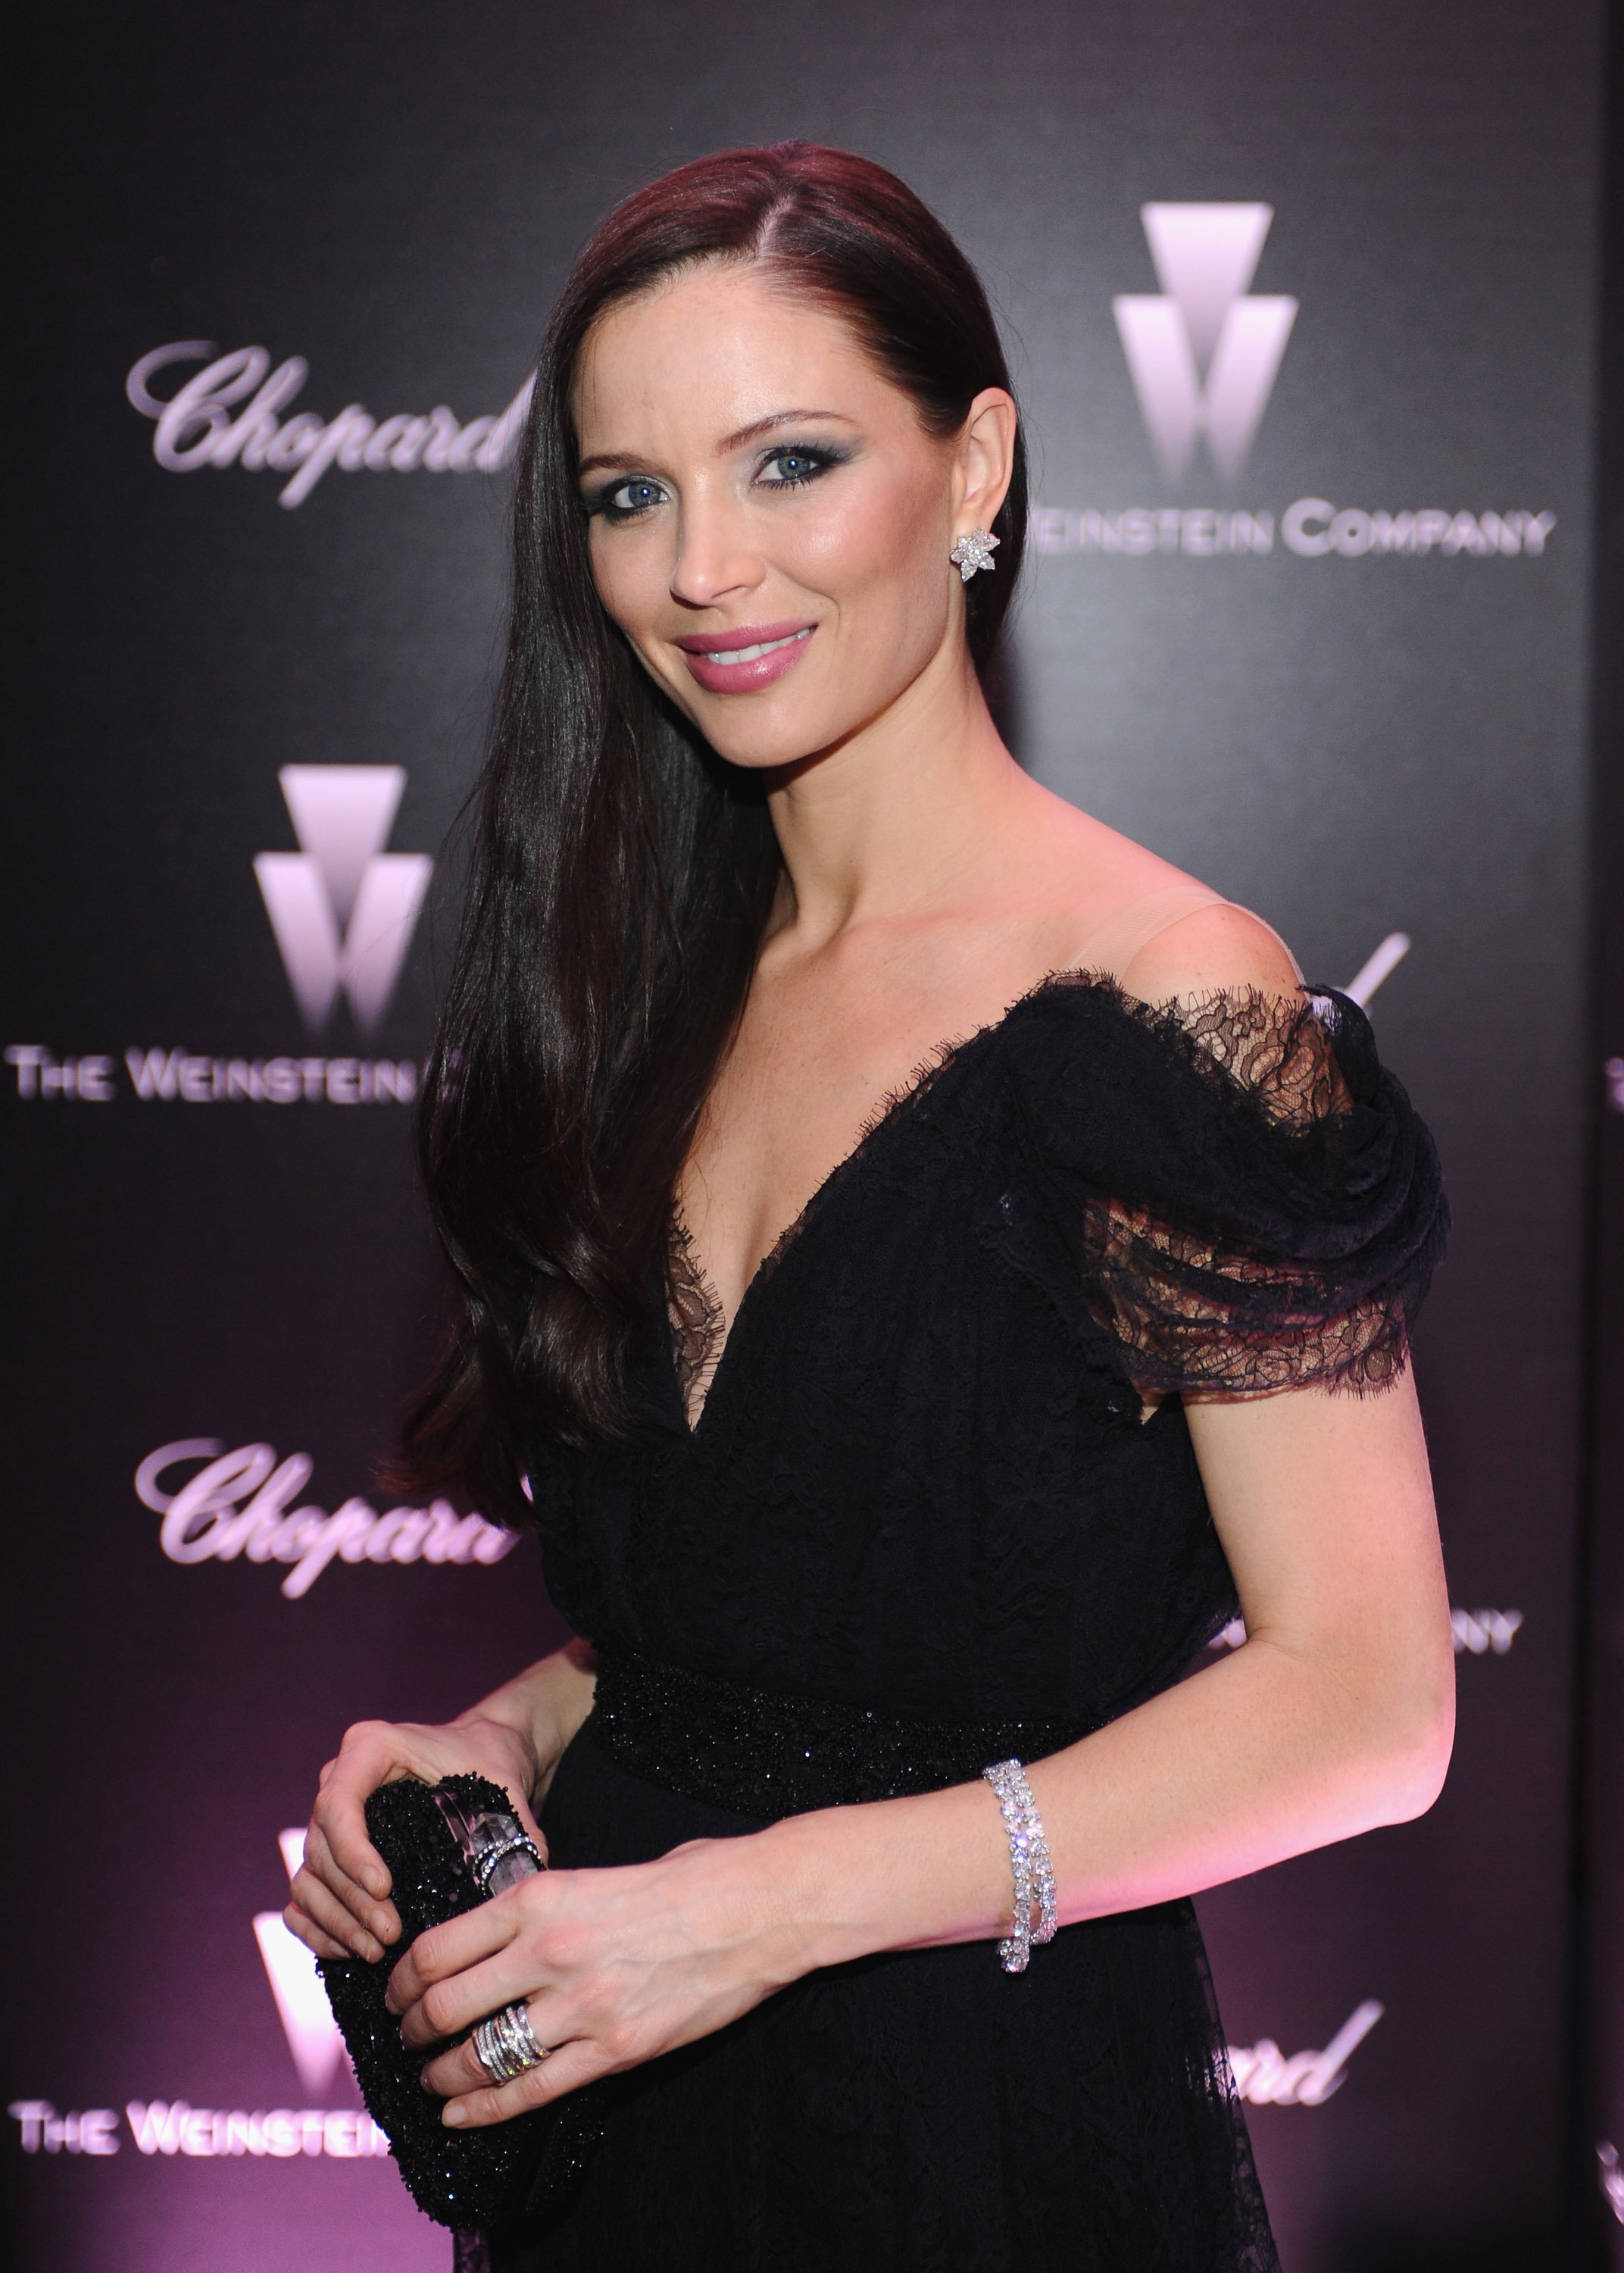 Georgina Chapman Wallpapers hd